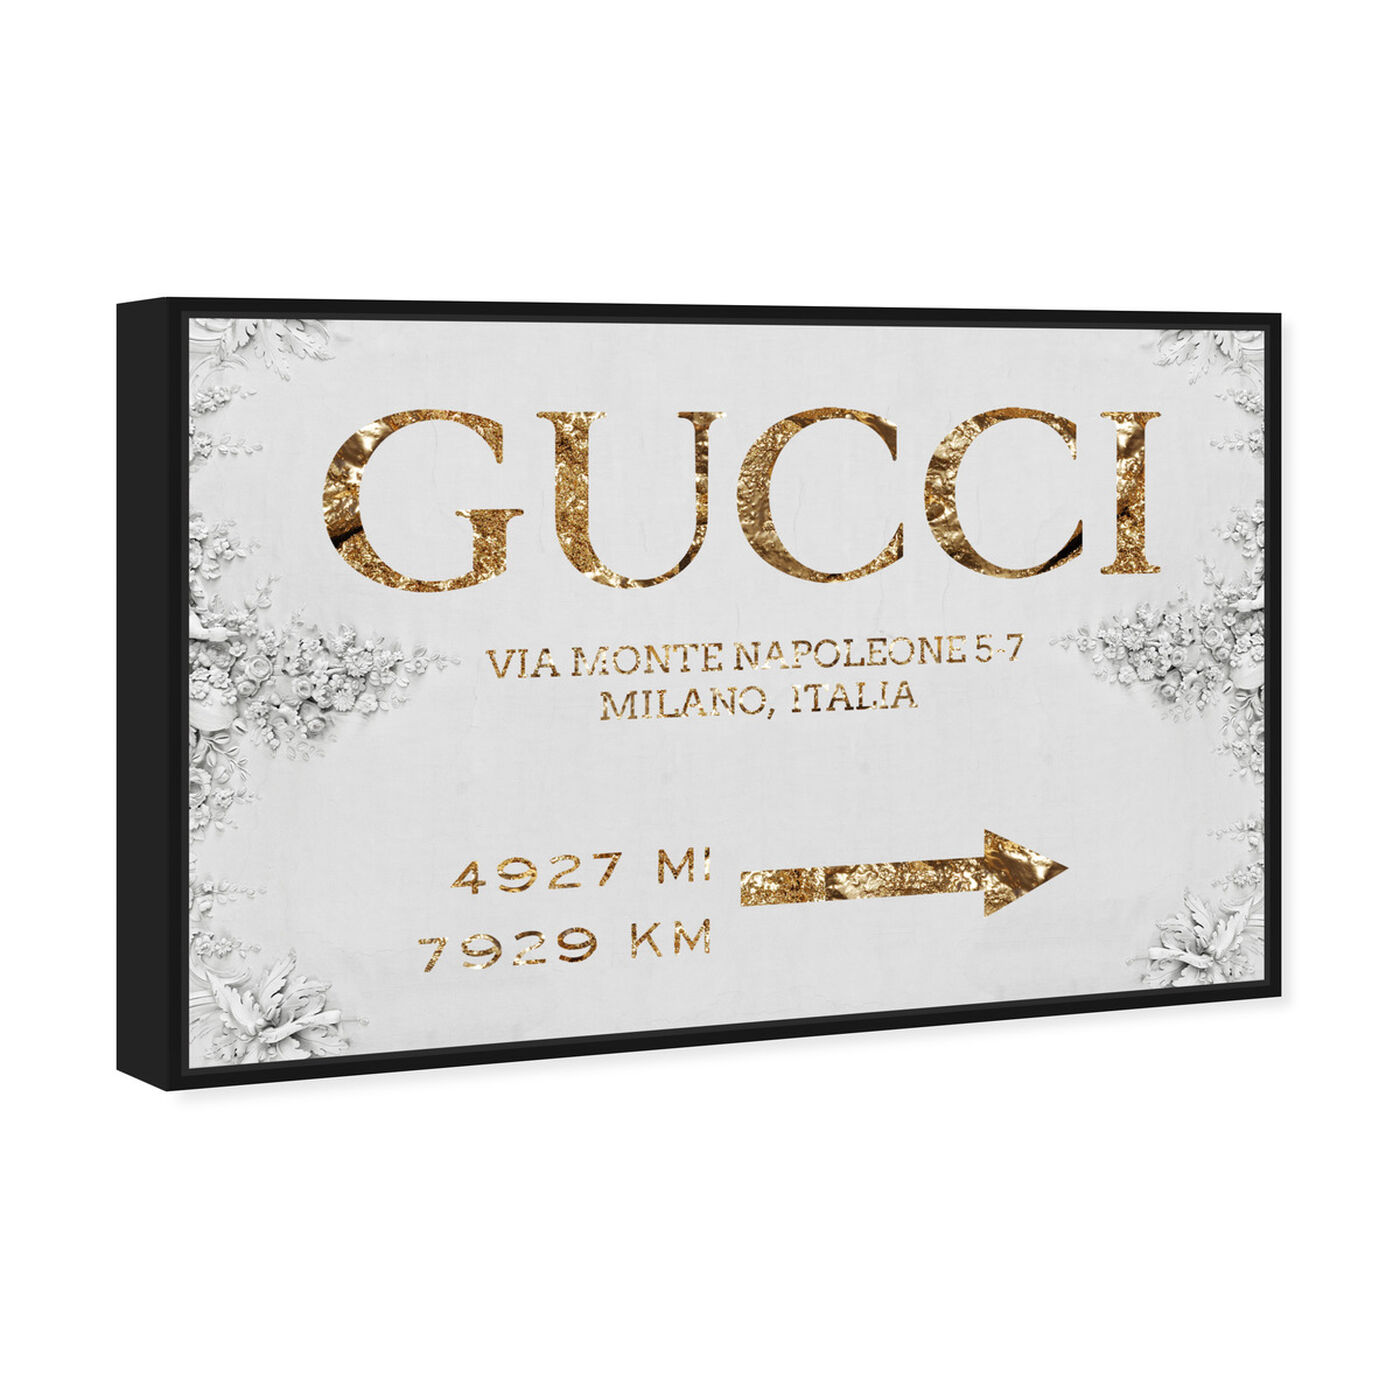 Angled view of Italian Luxe Road Sign featuring fashion and glam and road signs art.